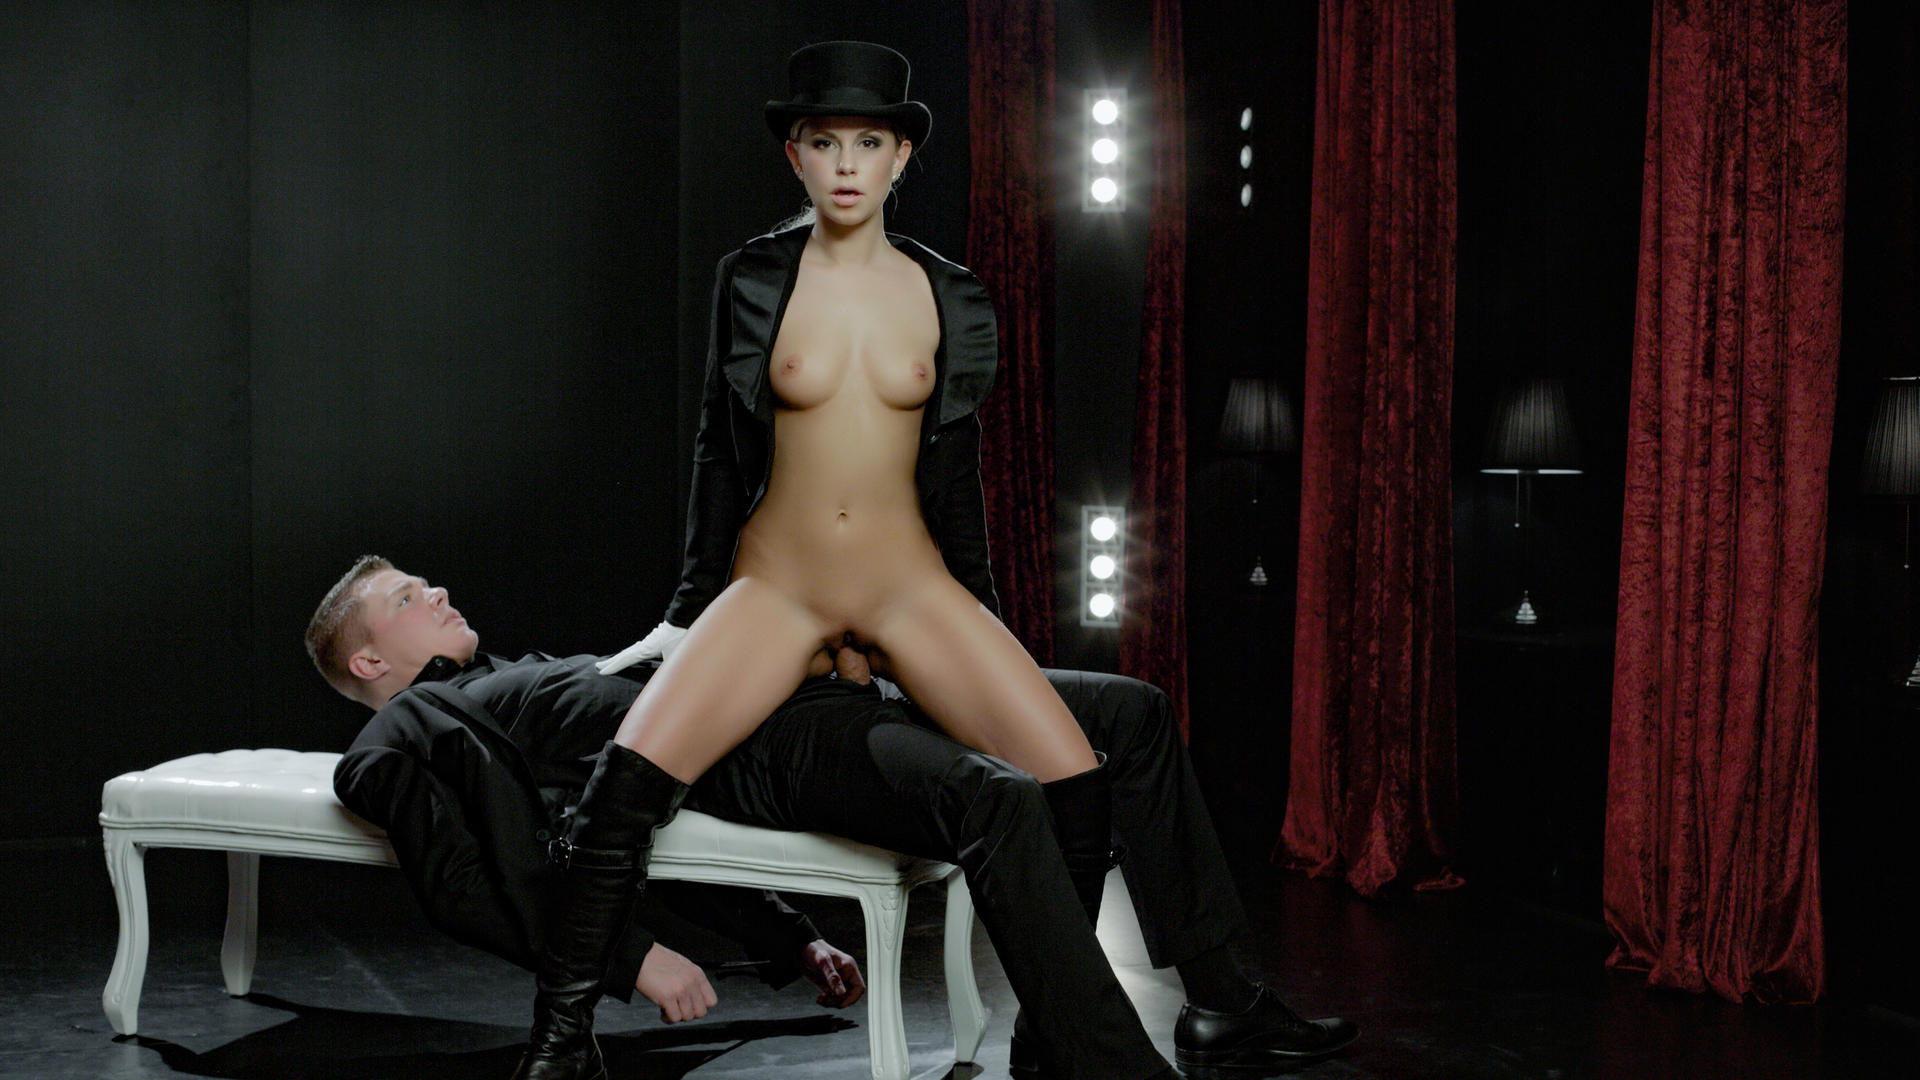 Light domination and fetish fuck with gorgeous Czech blondie Lola Myluv